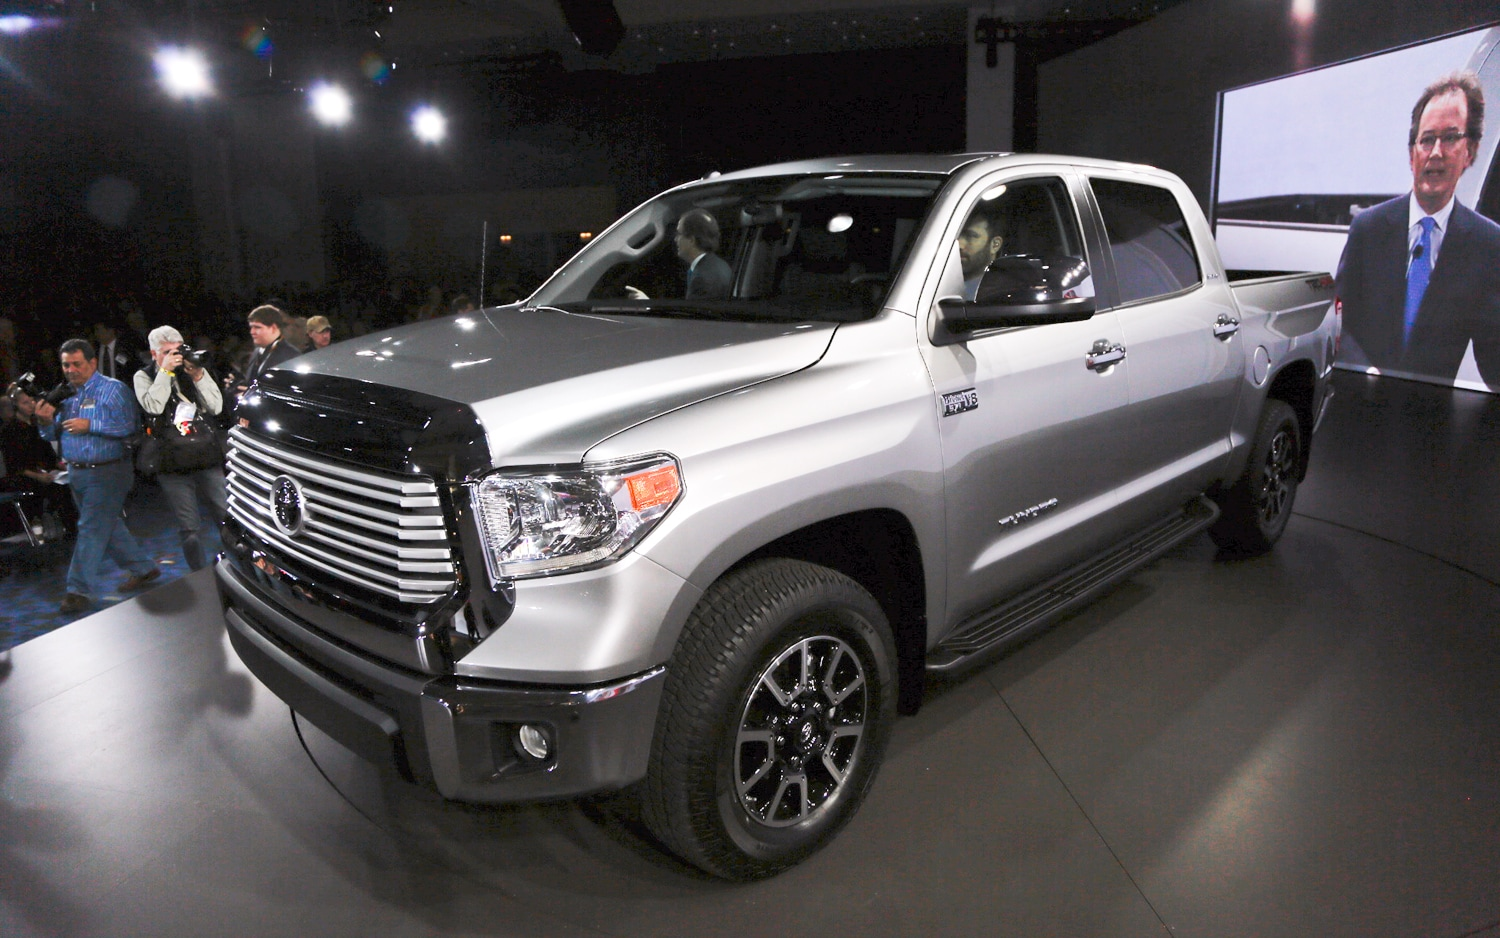 2014 Toyota Tundra and Toyota Highlander ing Soon